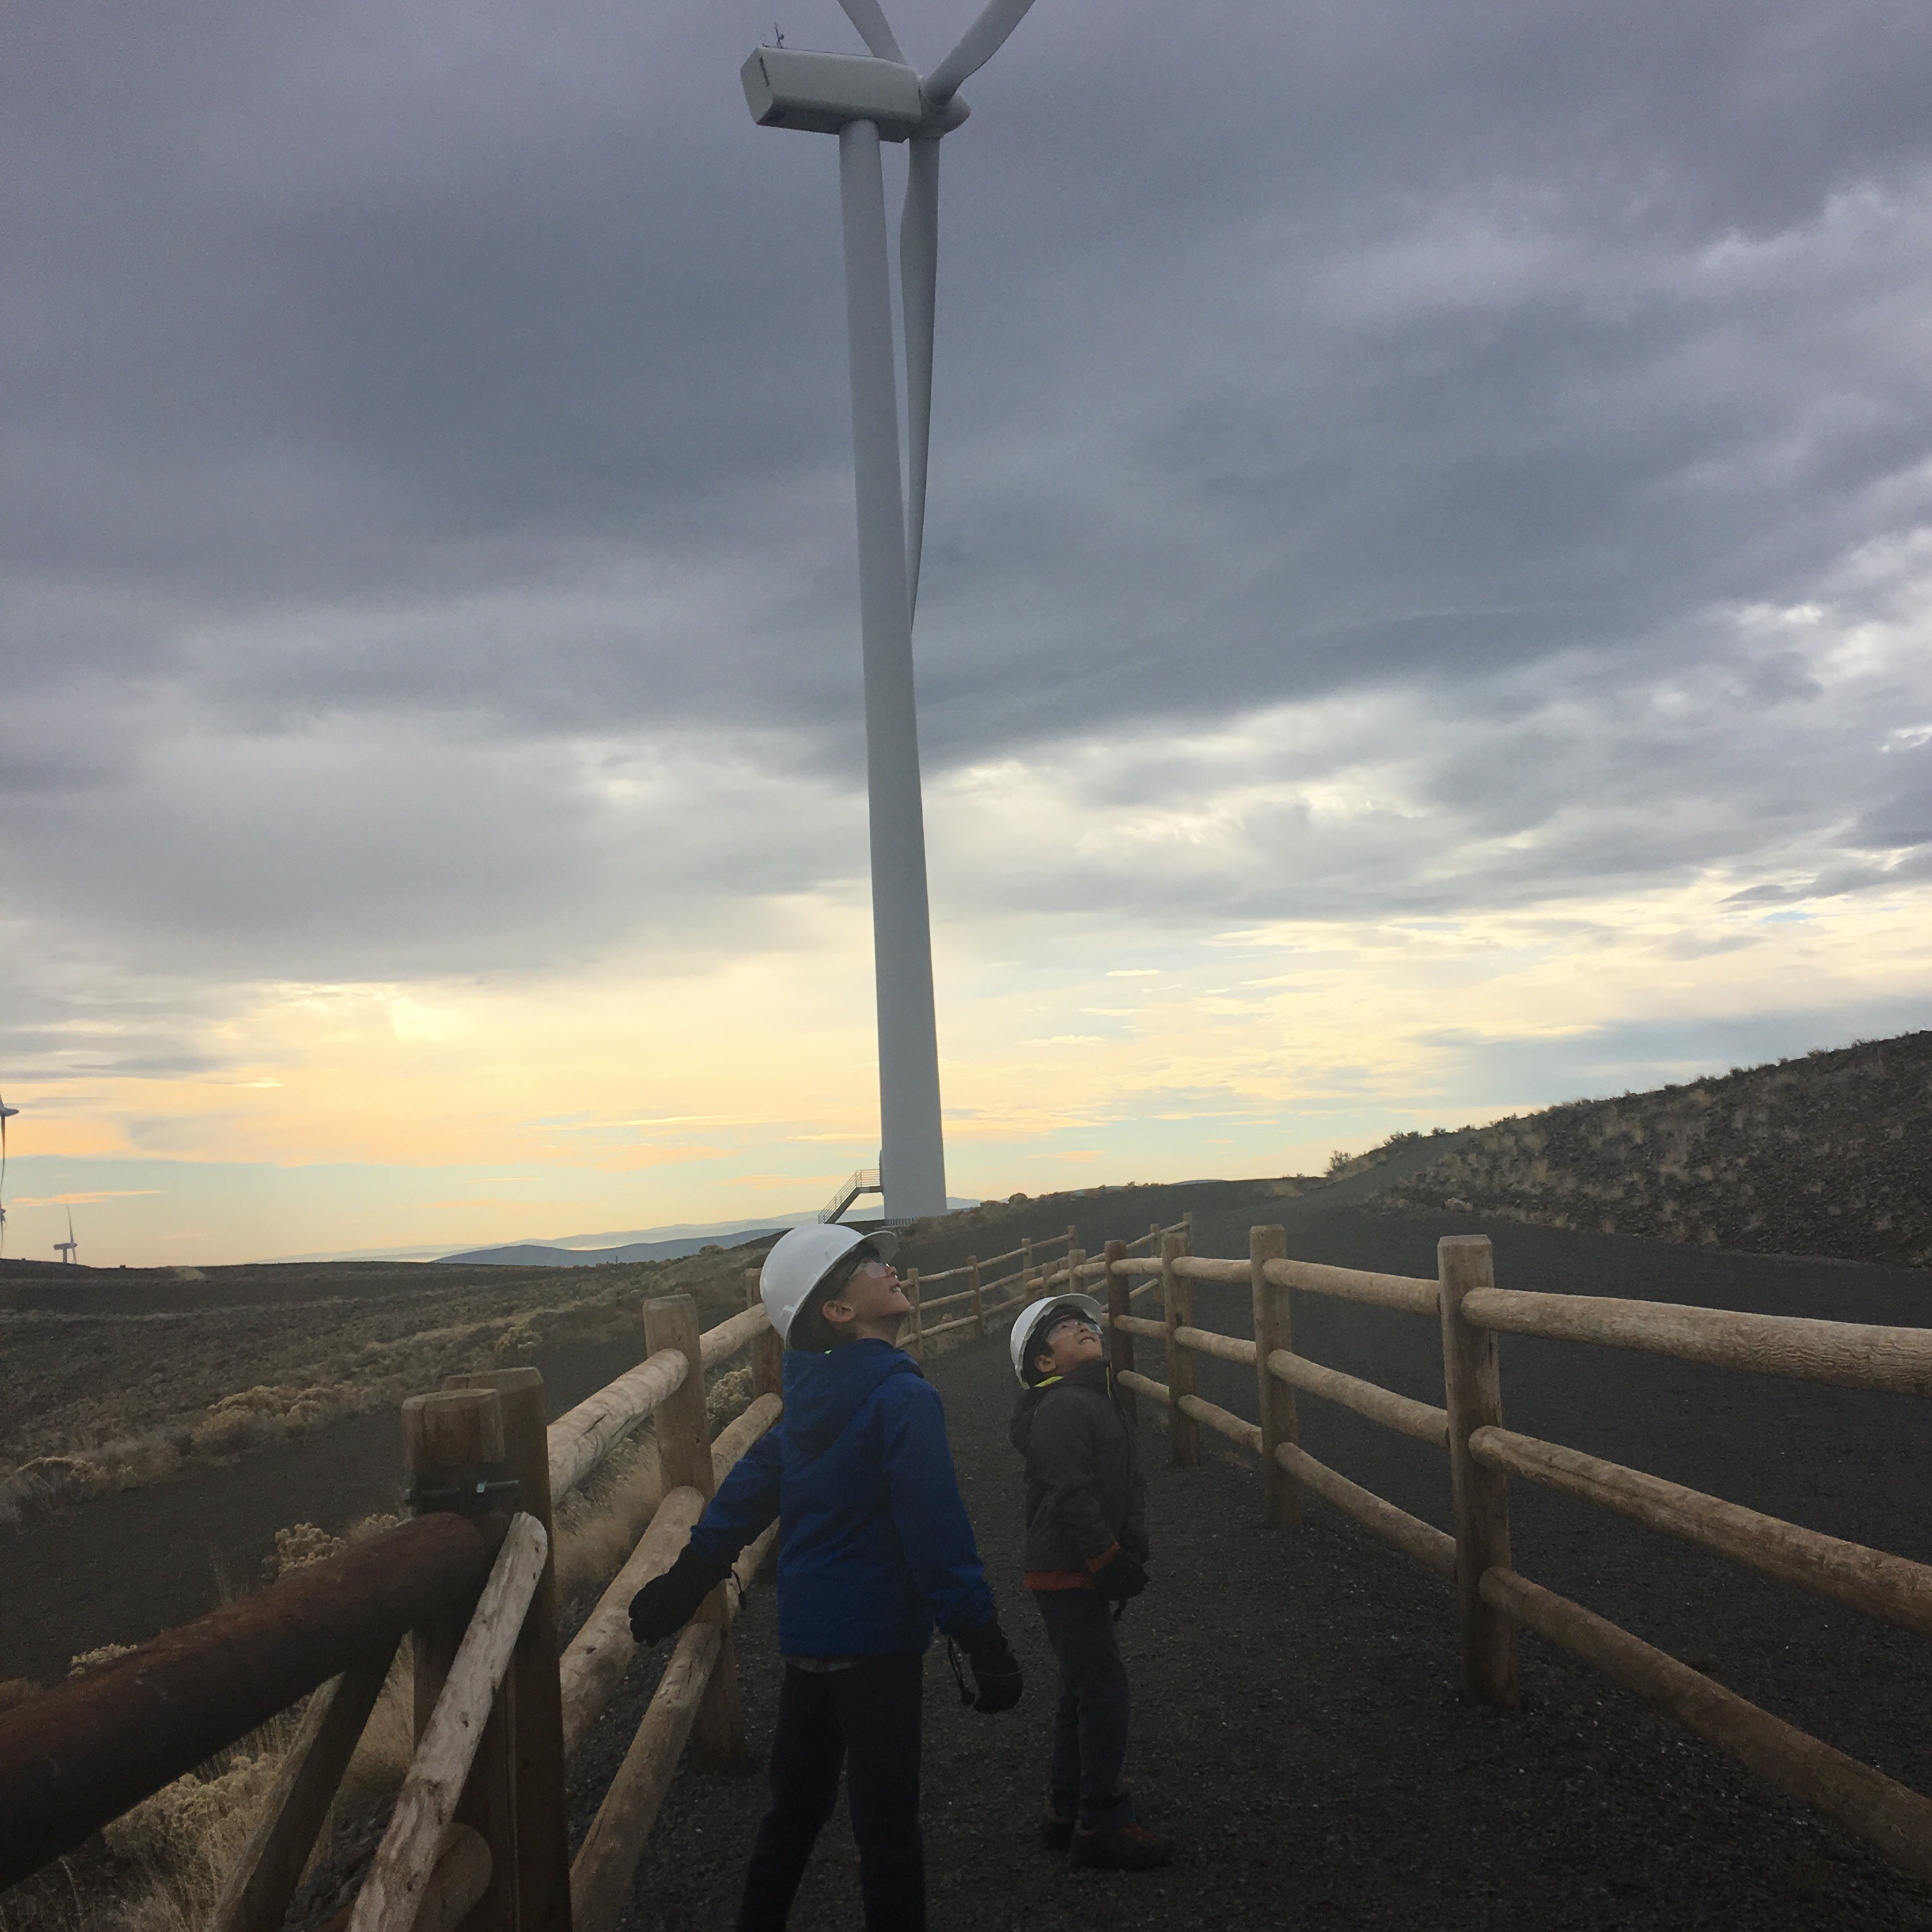 A Windfarm You Can Visit In Washington State (Wild Horse